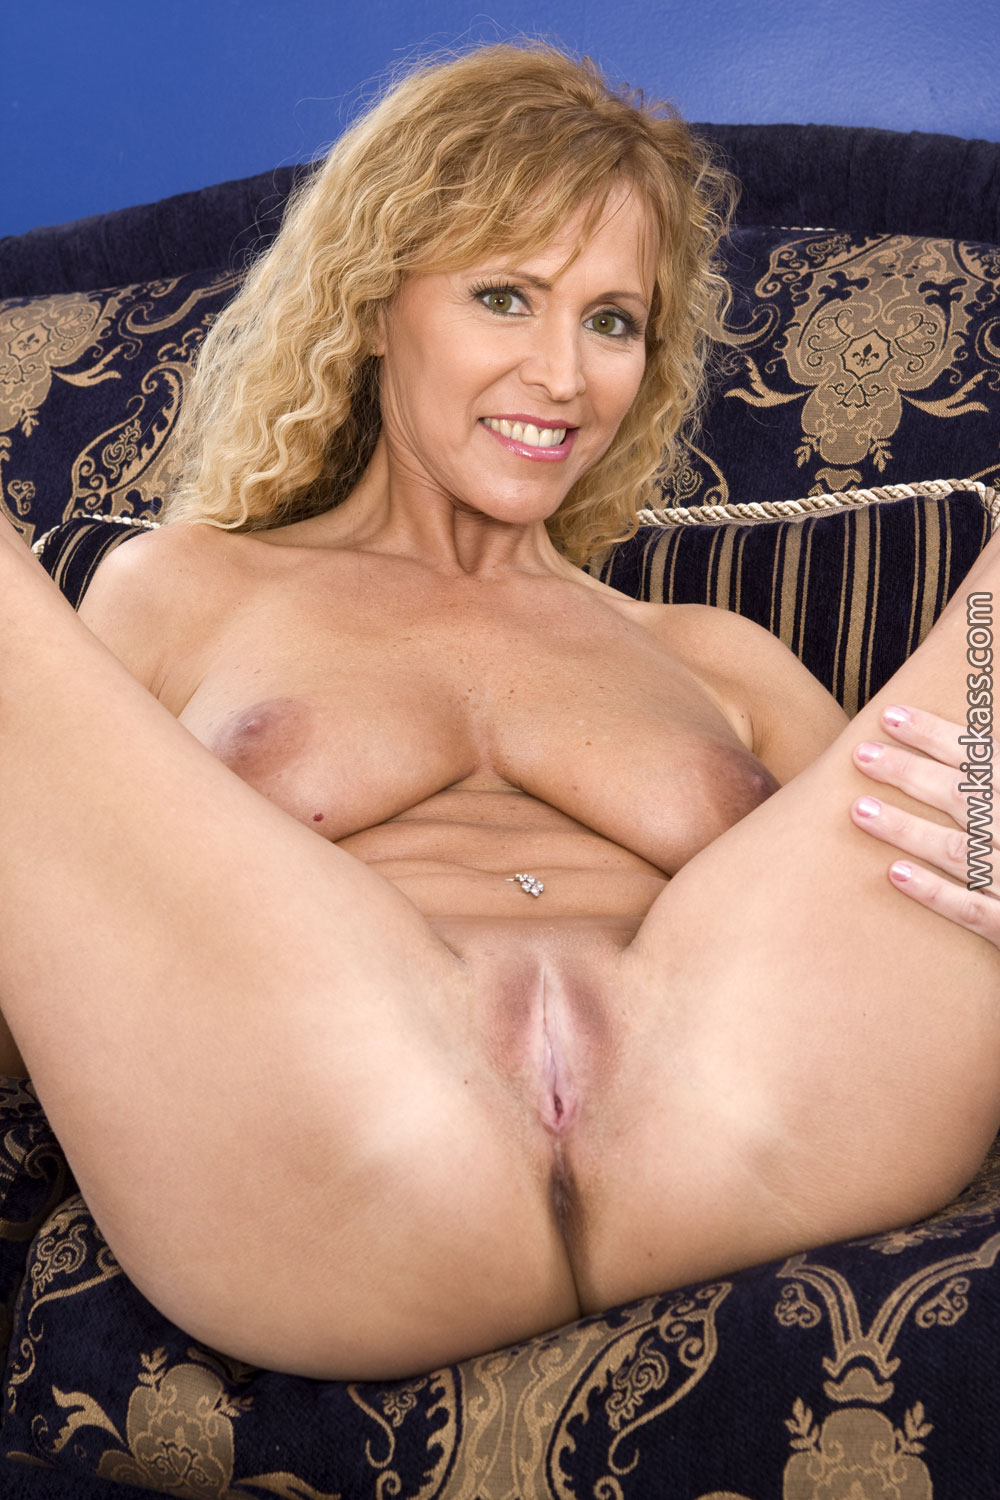 Nude pics moore Nicole for that